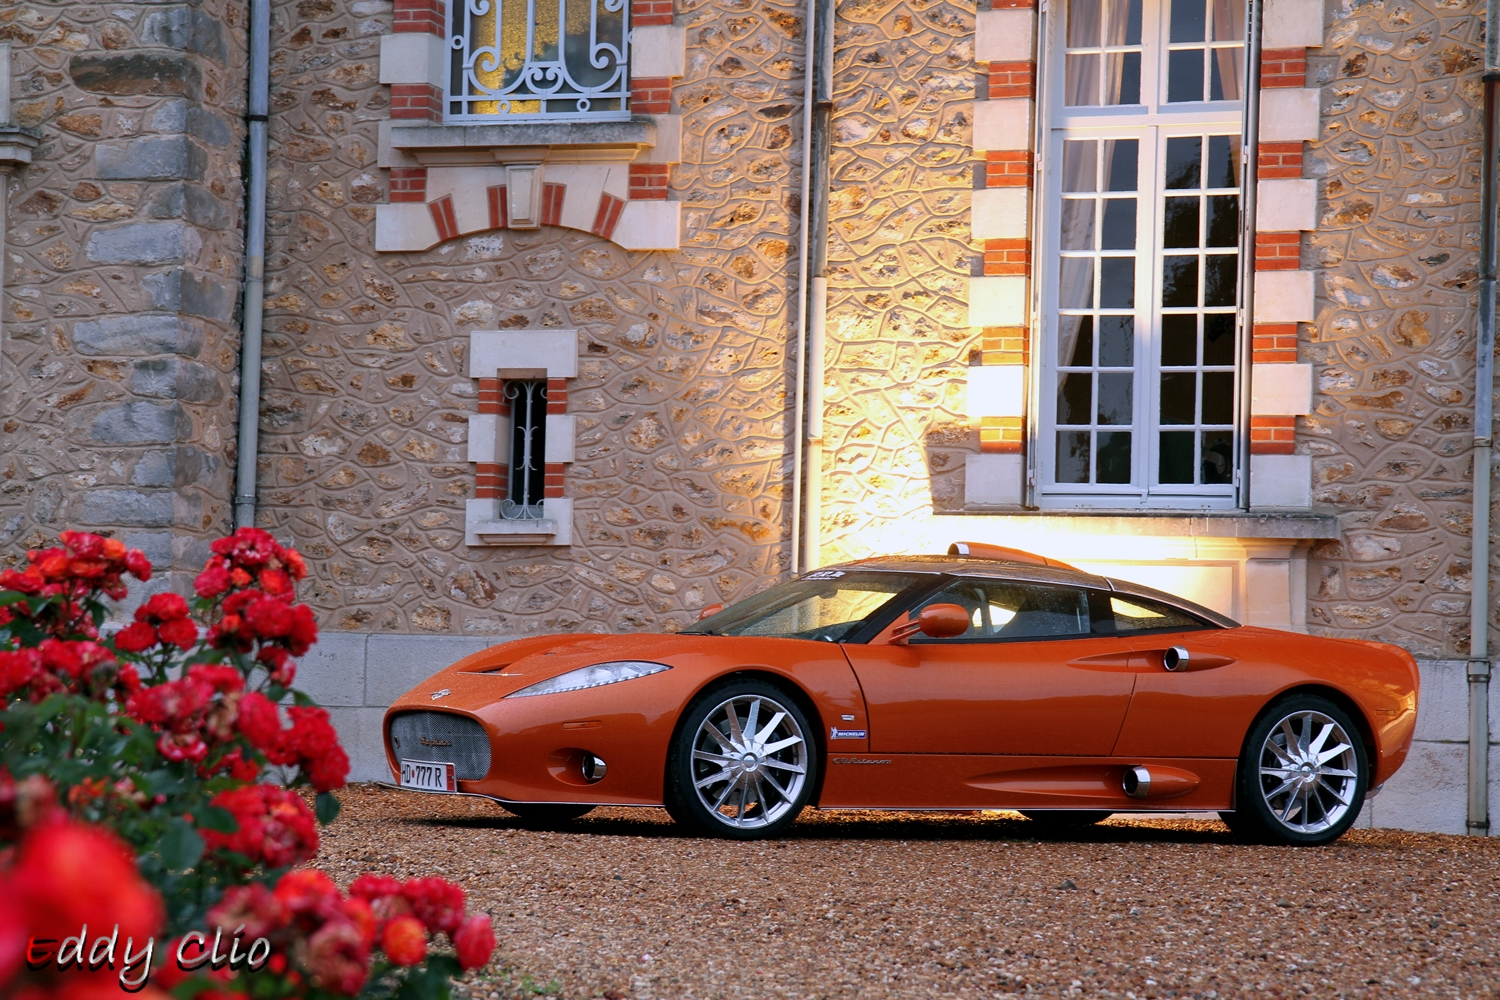 spyker c8 aileron parade des pilotes le mans by eddy clio flickr photo sharing. Black Bedroom Furniture Sets. Home Design Ideas